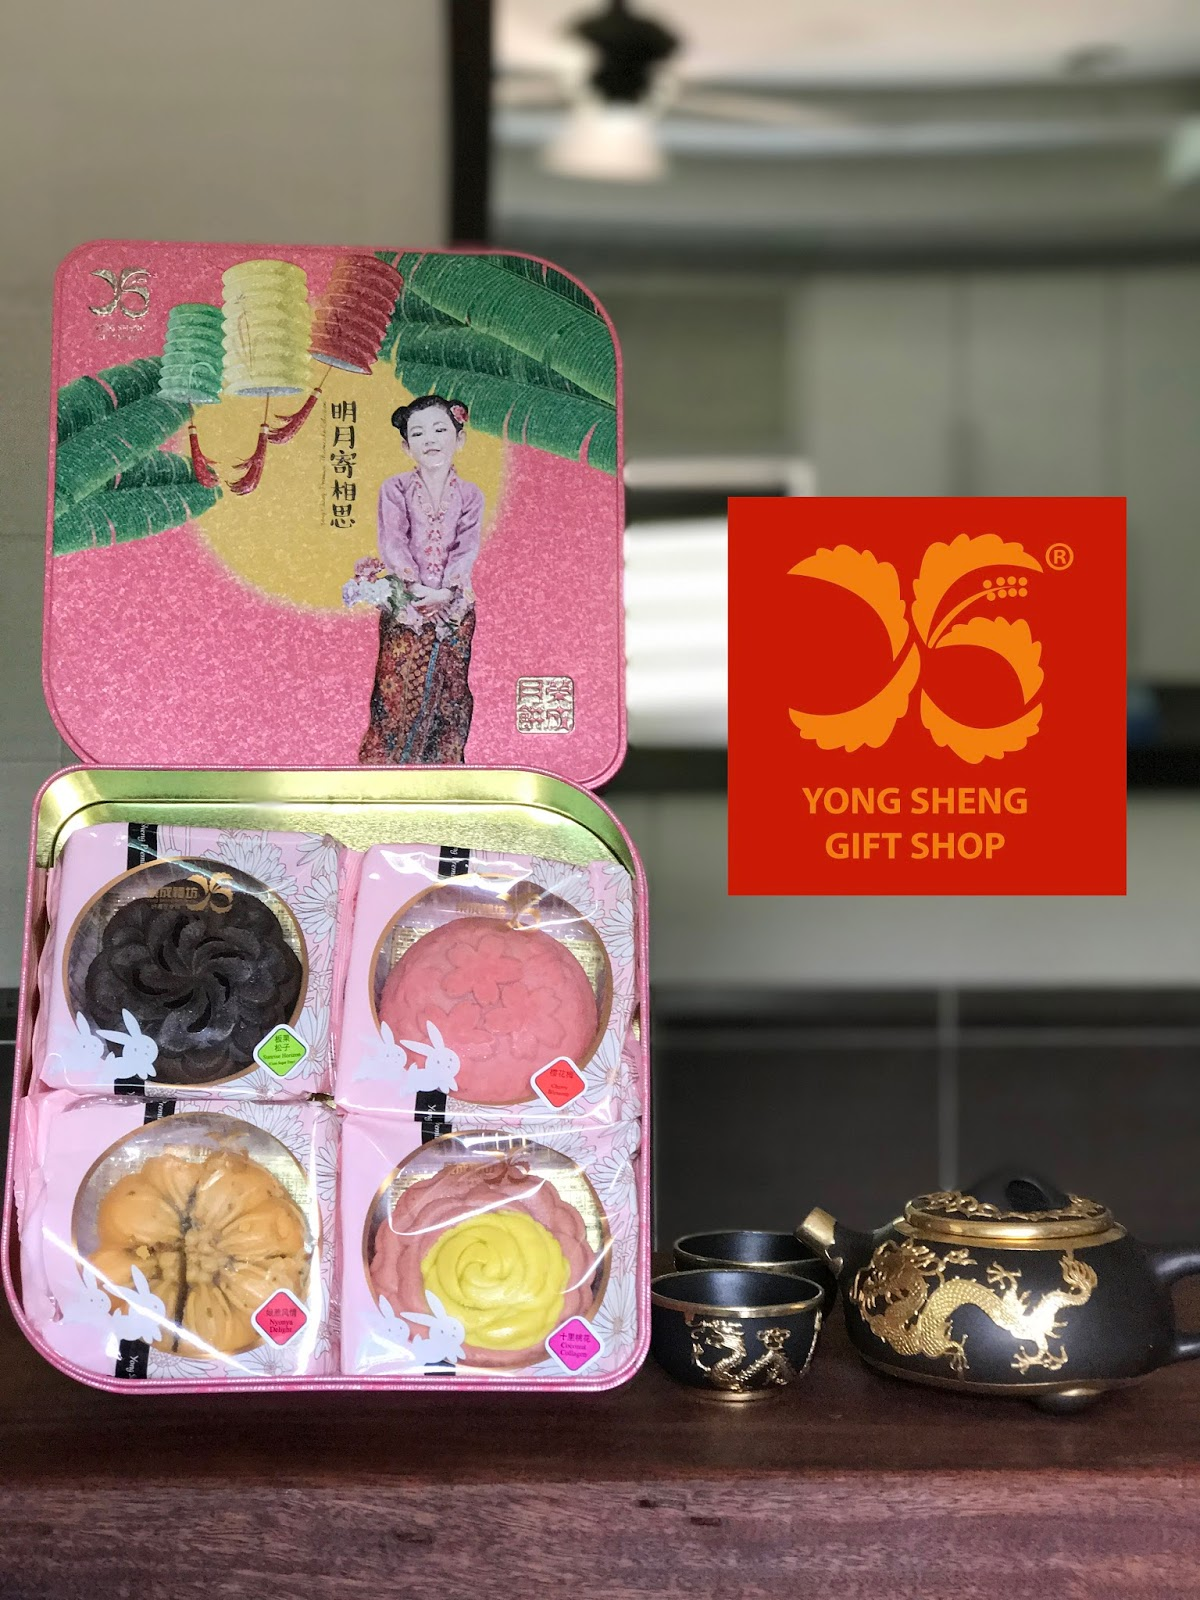 Mid Autumn Festival - Mooncake Gift Box by Yong Sheng Gift Shop